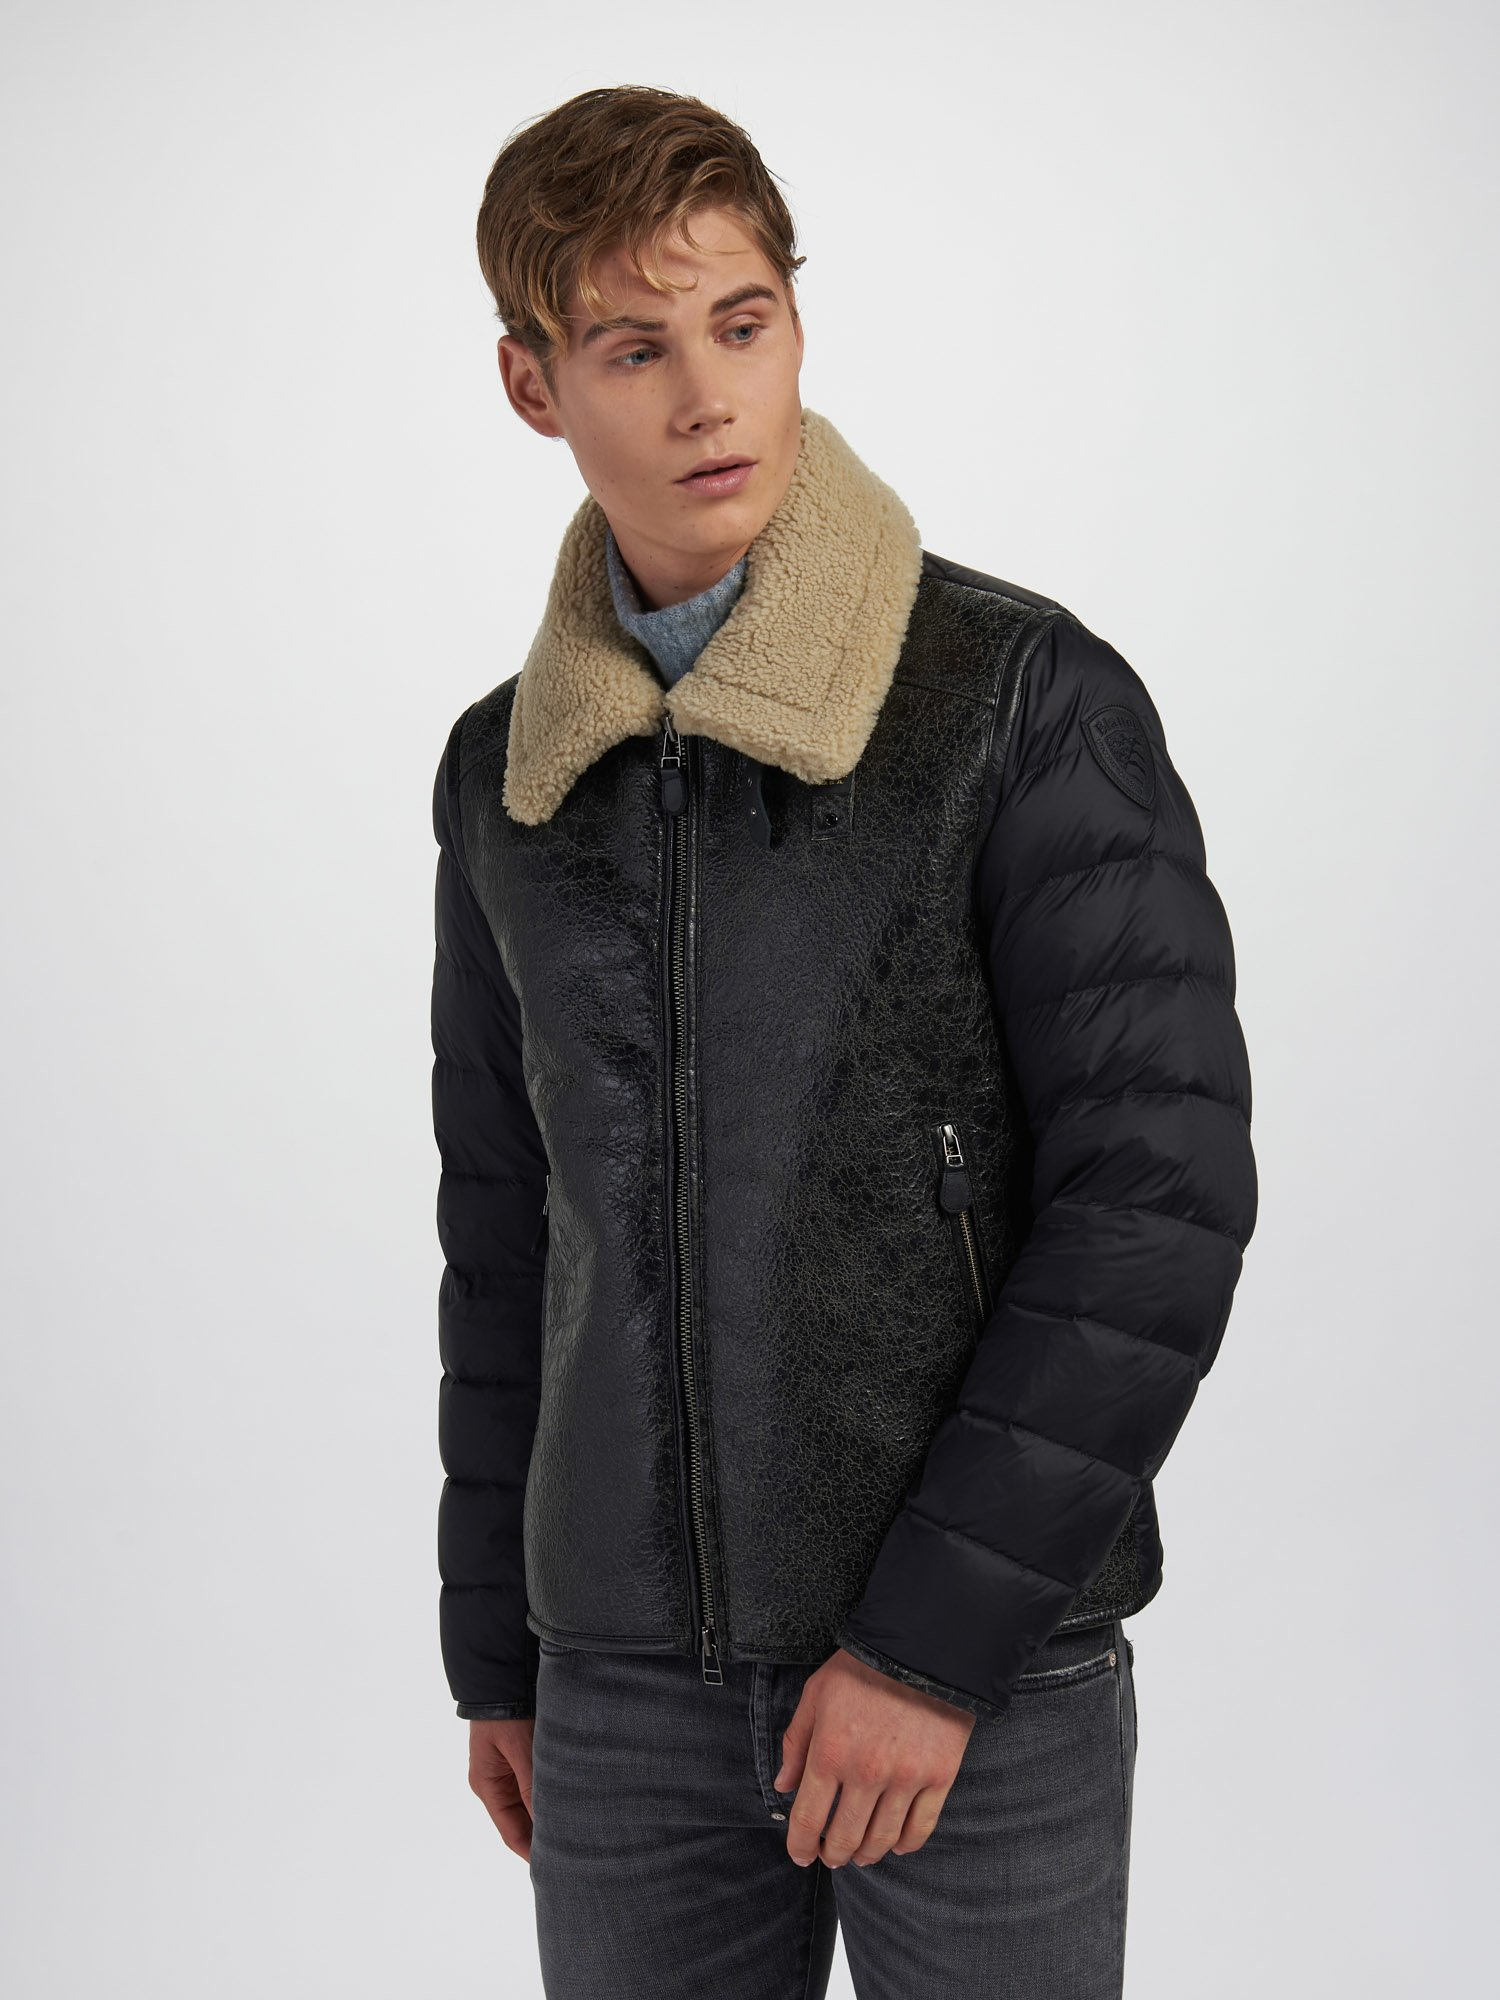 ERIC SHEARLING WITH LARGE COLLAR - Blauer